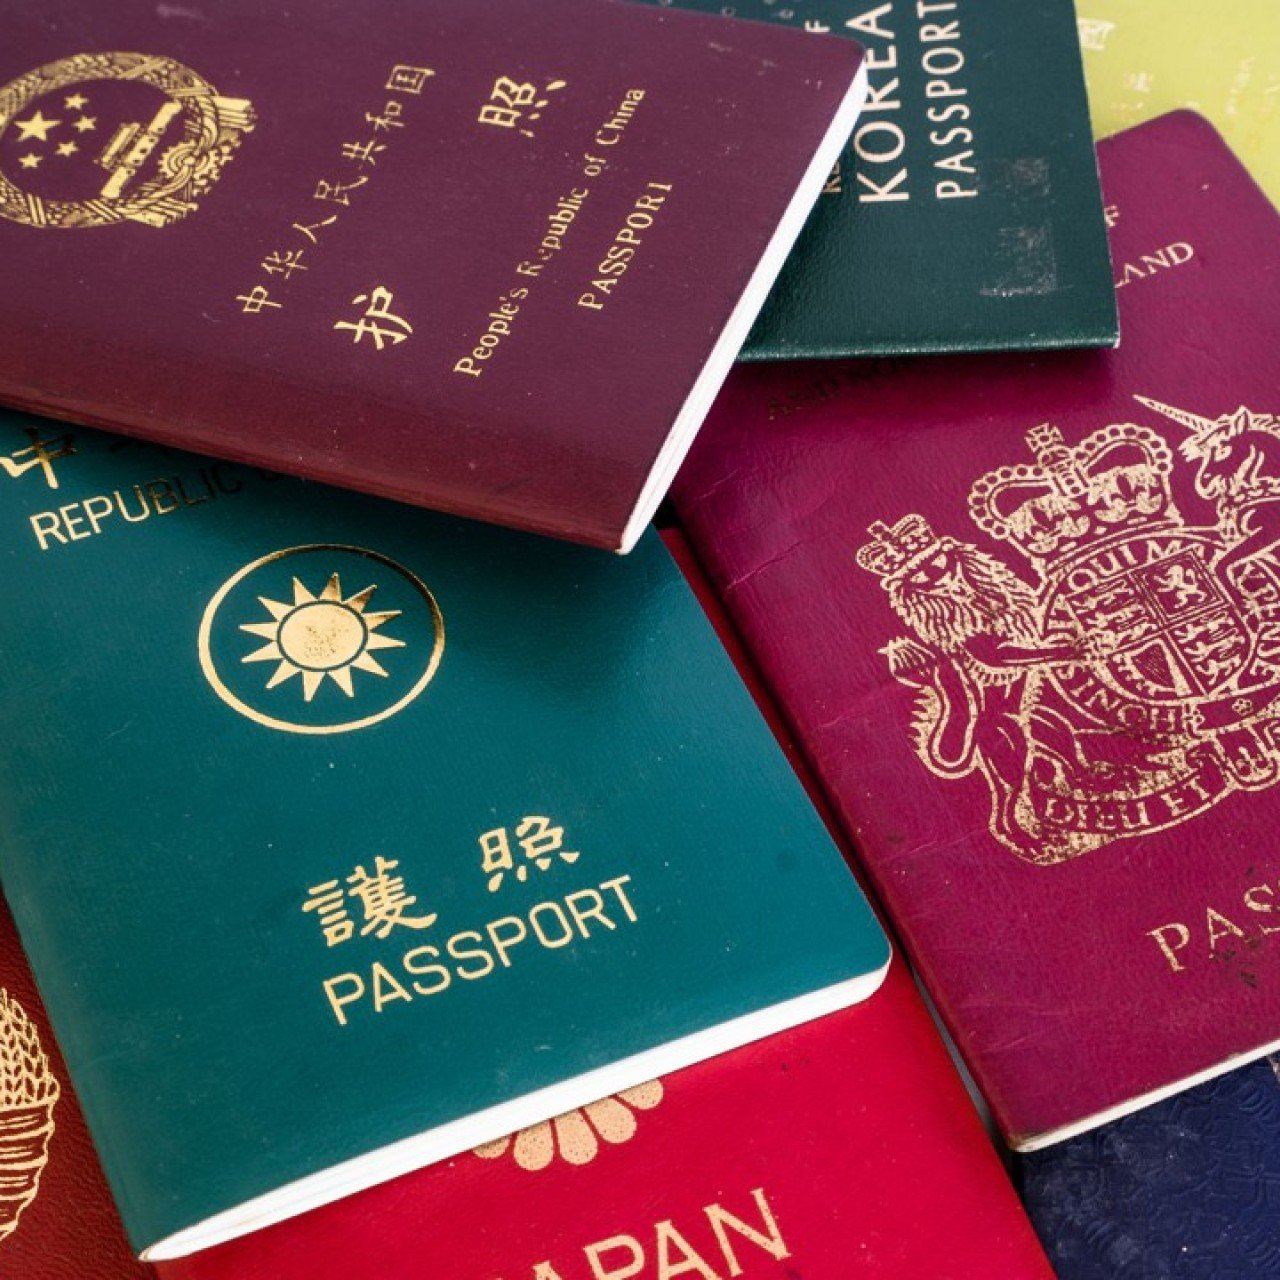 Hong Kong passport is now the world's 13th most powerful, according